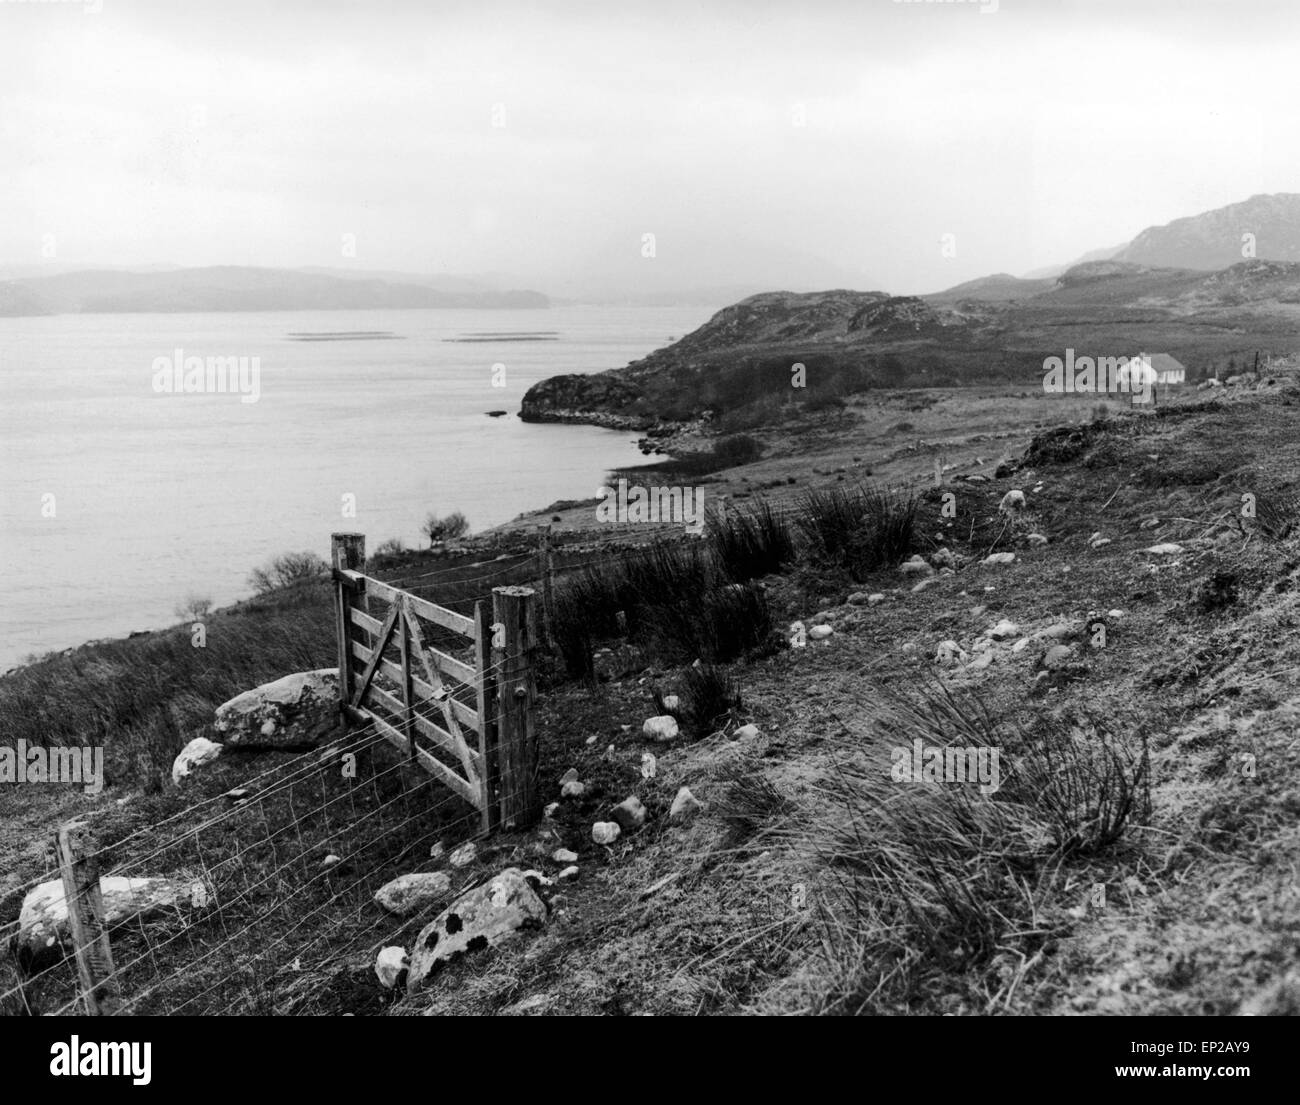 A view over Loch Ewe, which was a potential site in 1992 for a Super Quarry. 26th January 1992. - Stock Image